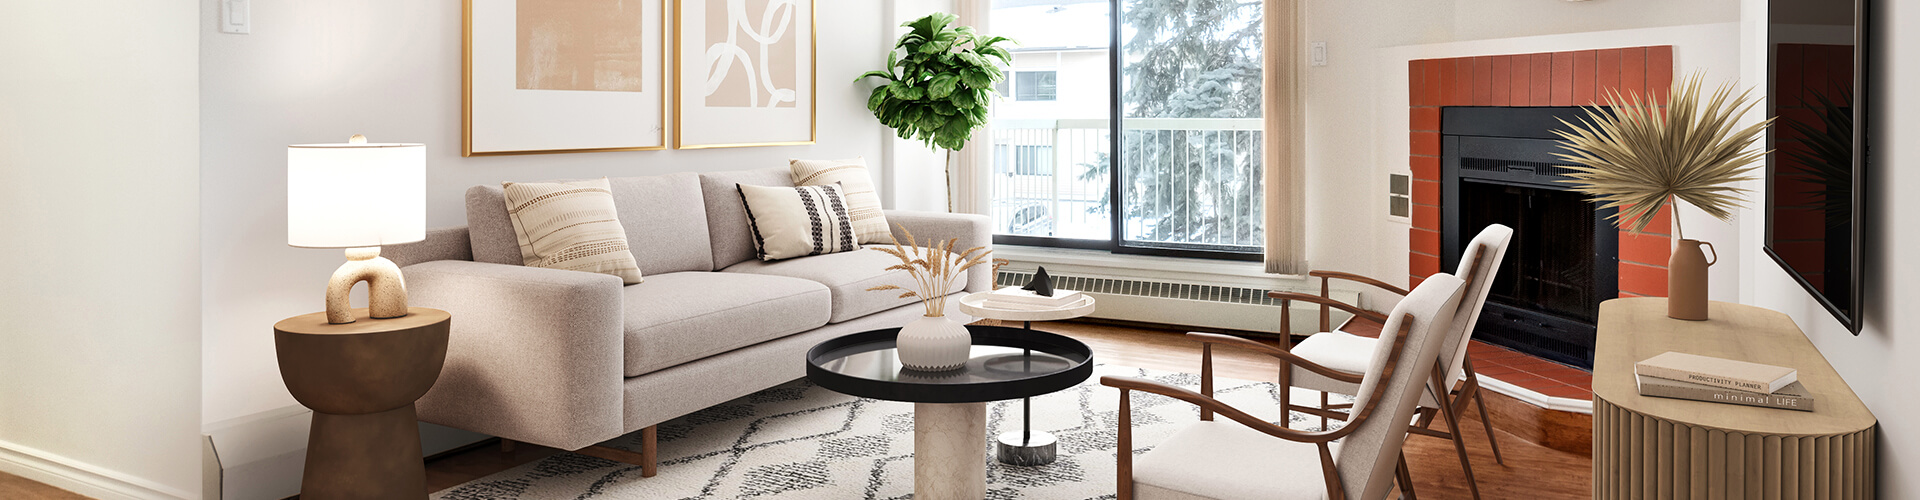 Modern living room at Woodlands Manor Apartments in Calgary. Rent with Minto Apartments.